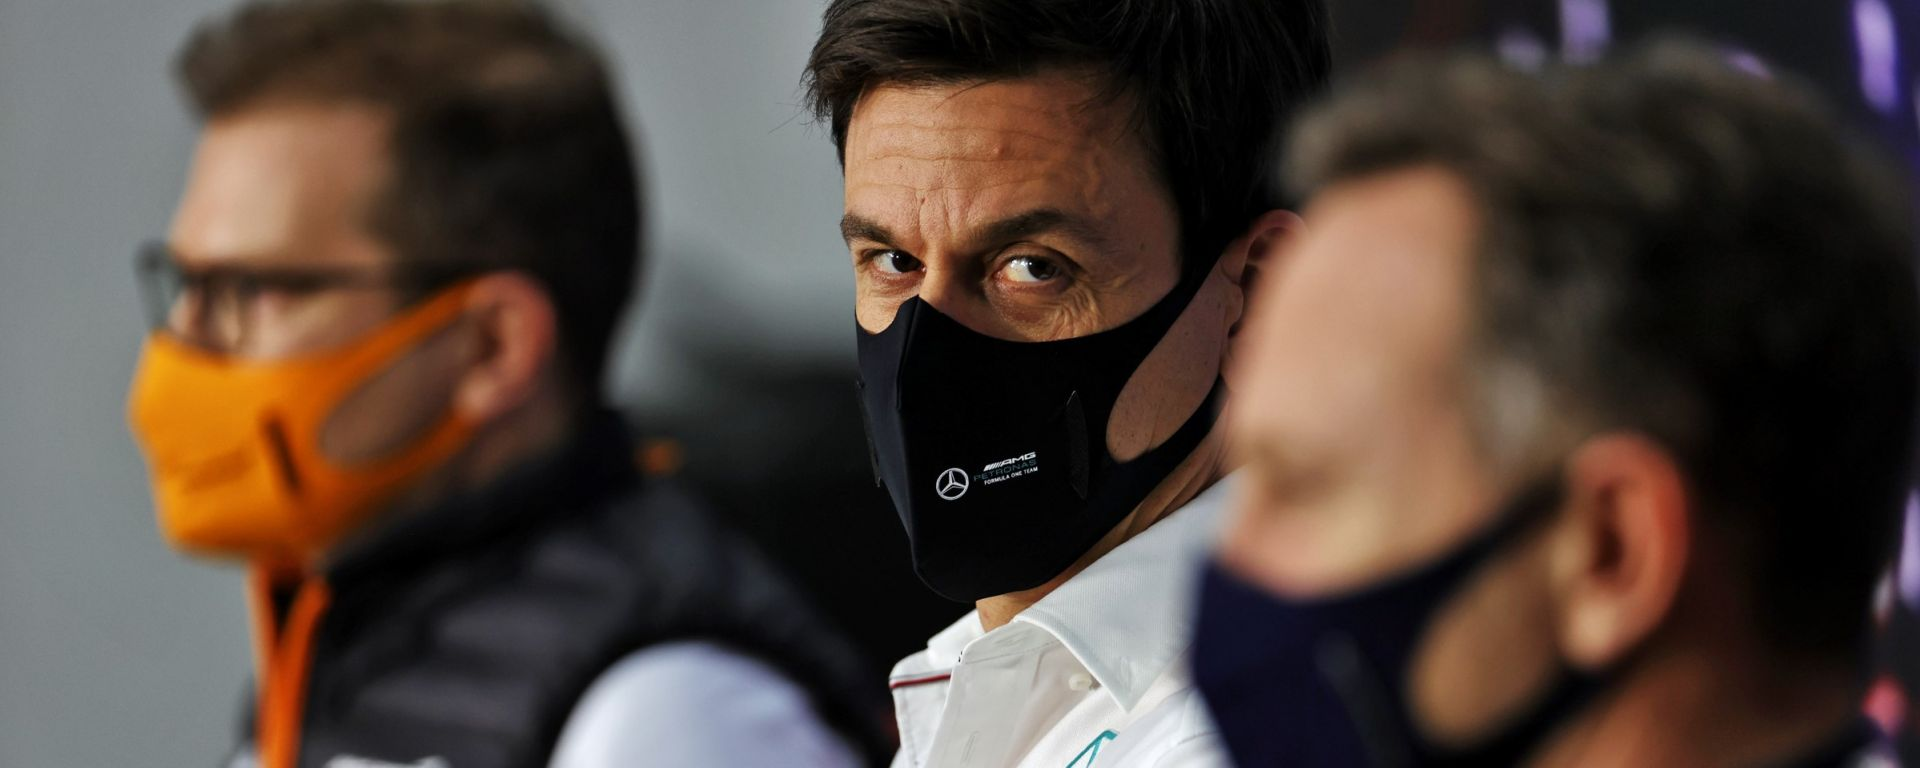 F1 2021: Toto Wolff (Mercedes) in conferenza stampa